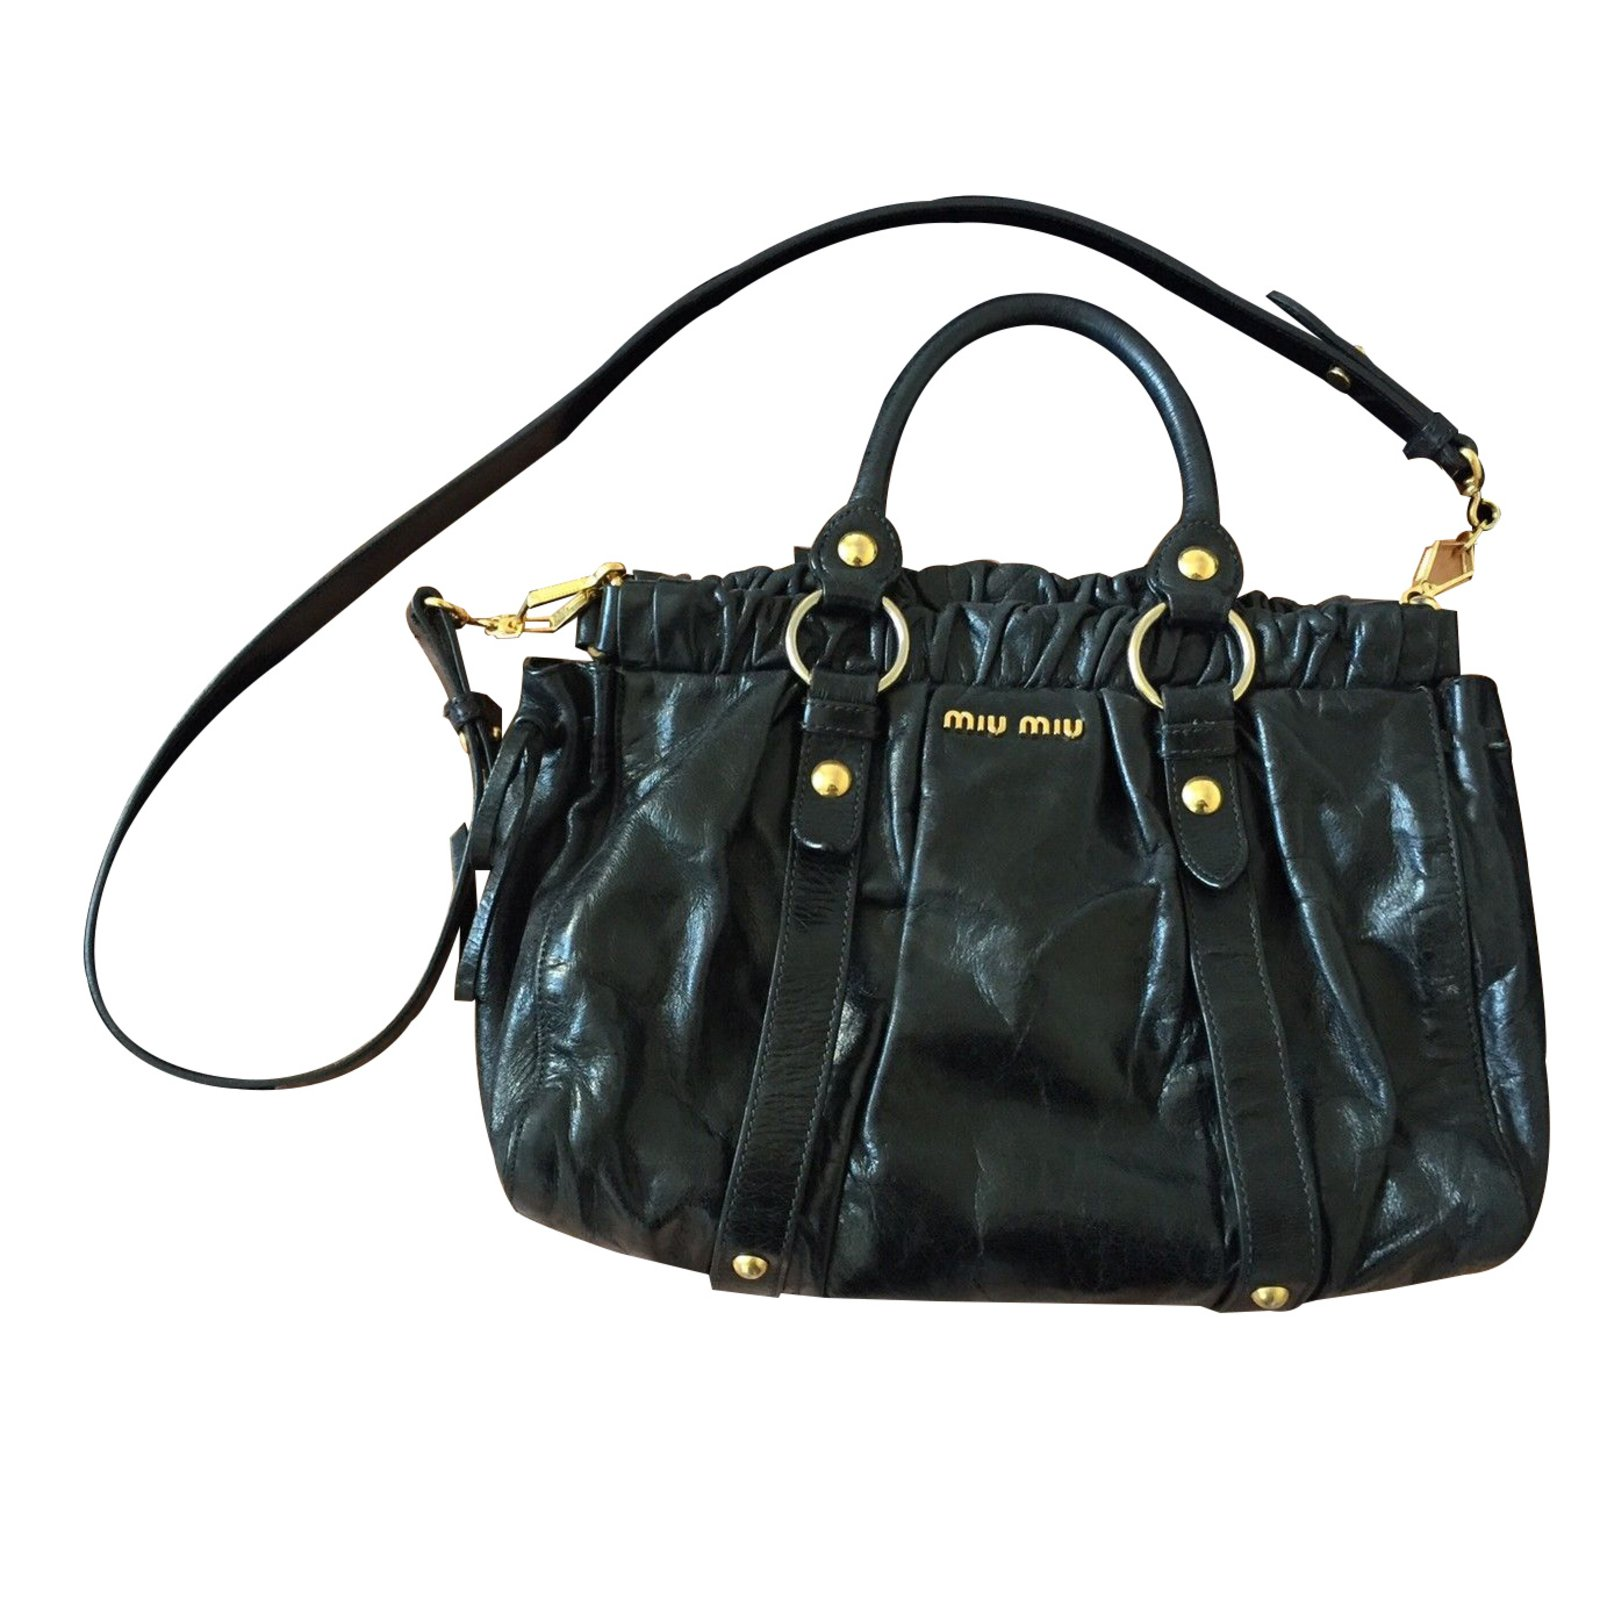 b21ae2dc53e Miu Miu Handbags Handbags Leather Black ref.14239 - Joli Closet